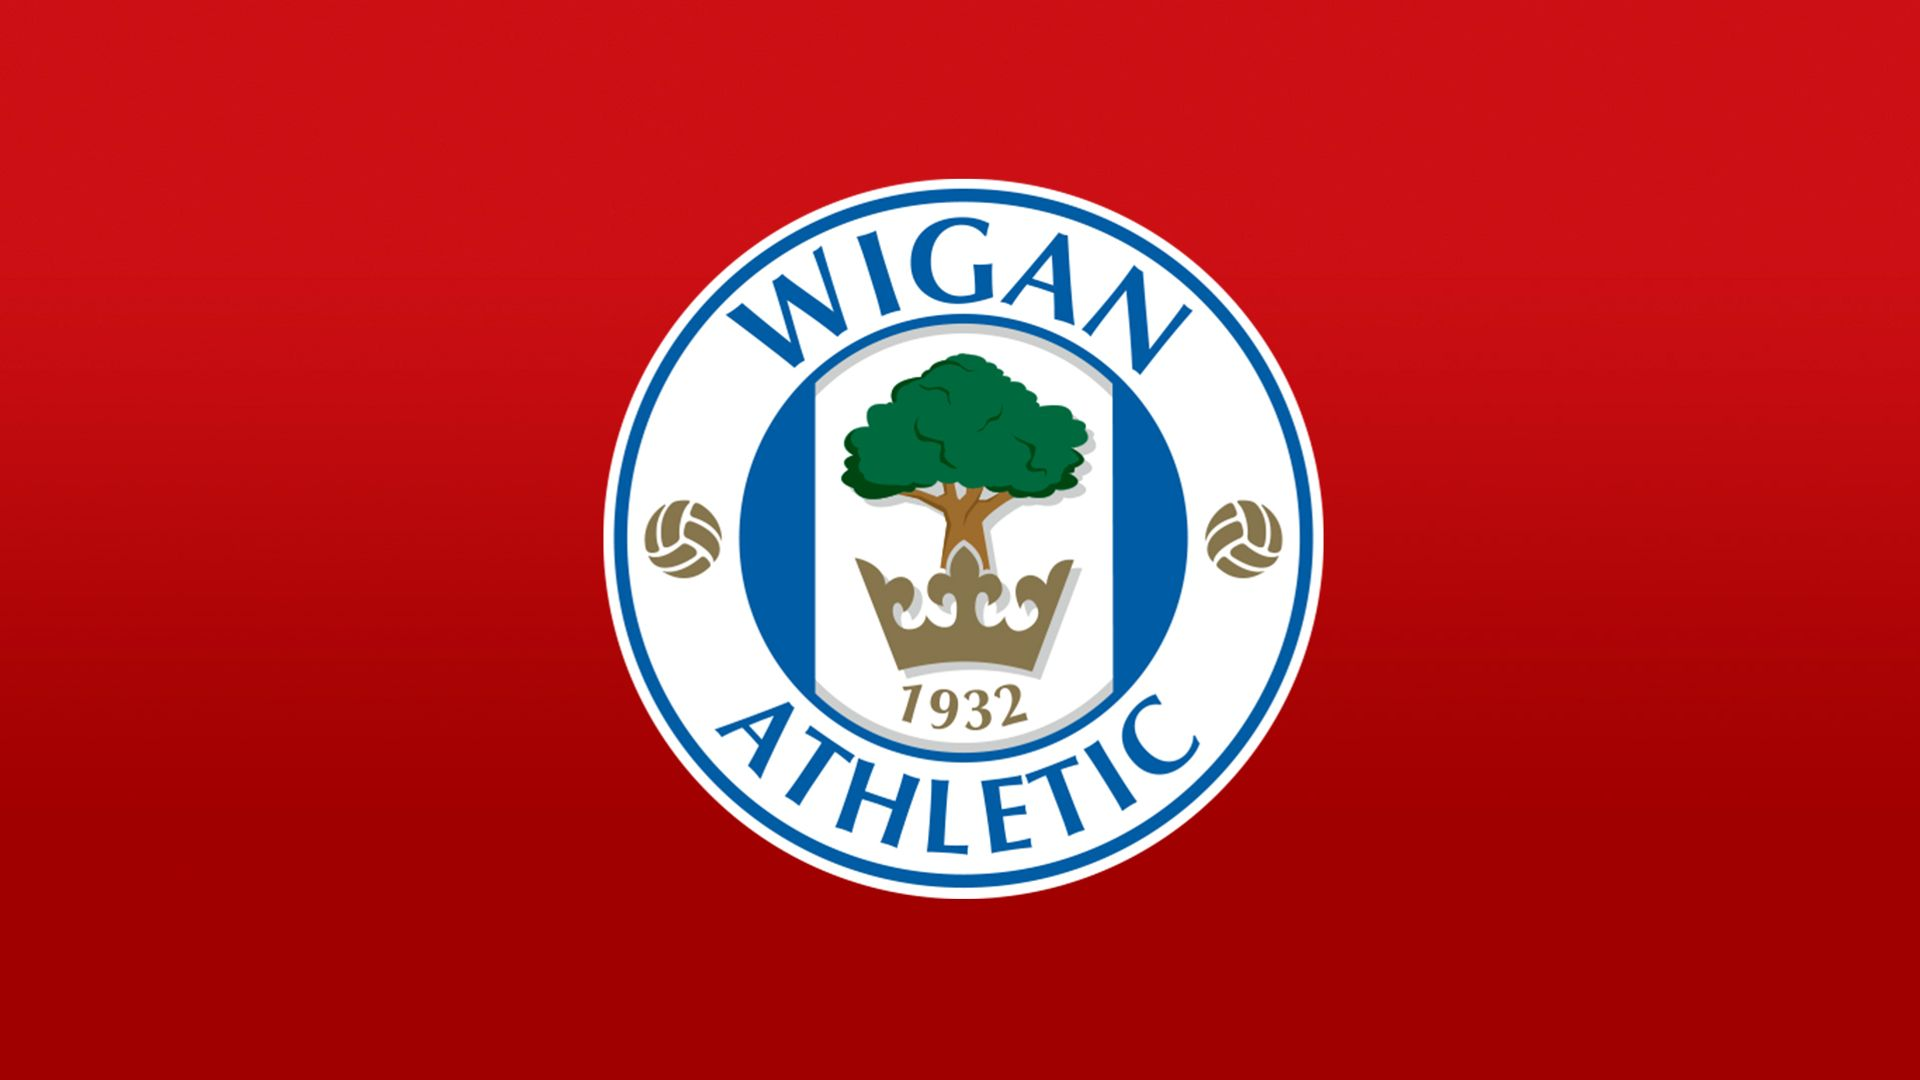 Wigan Athletic fixtures: League One 2021/22